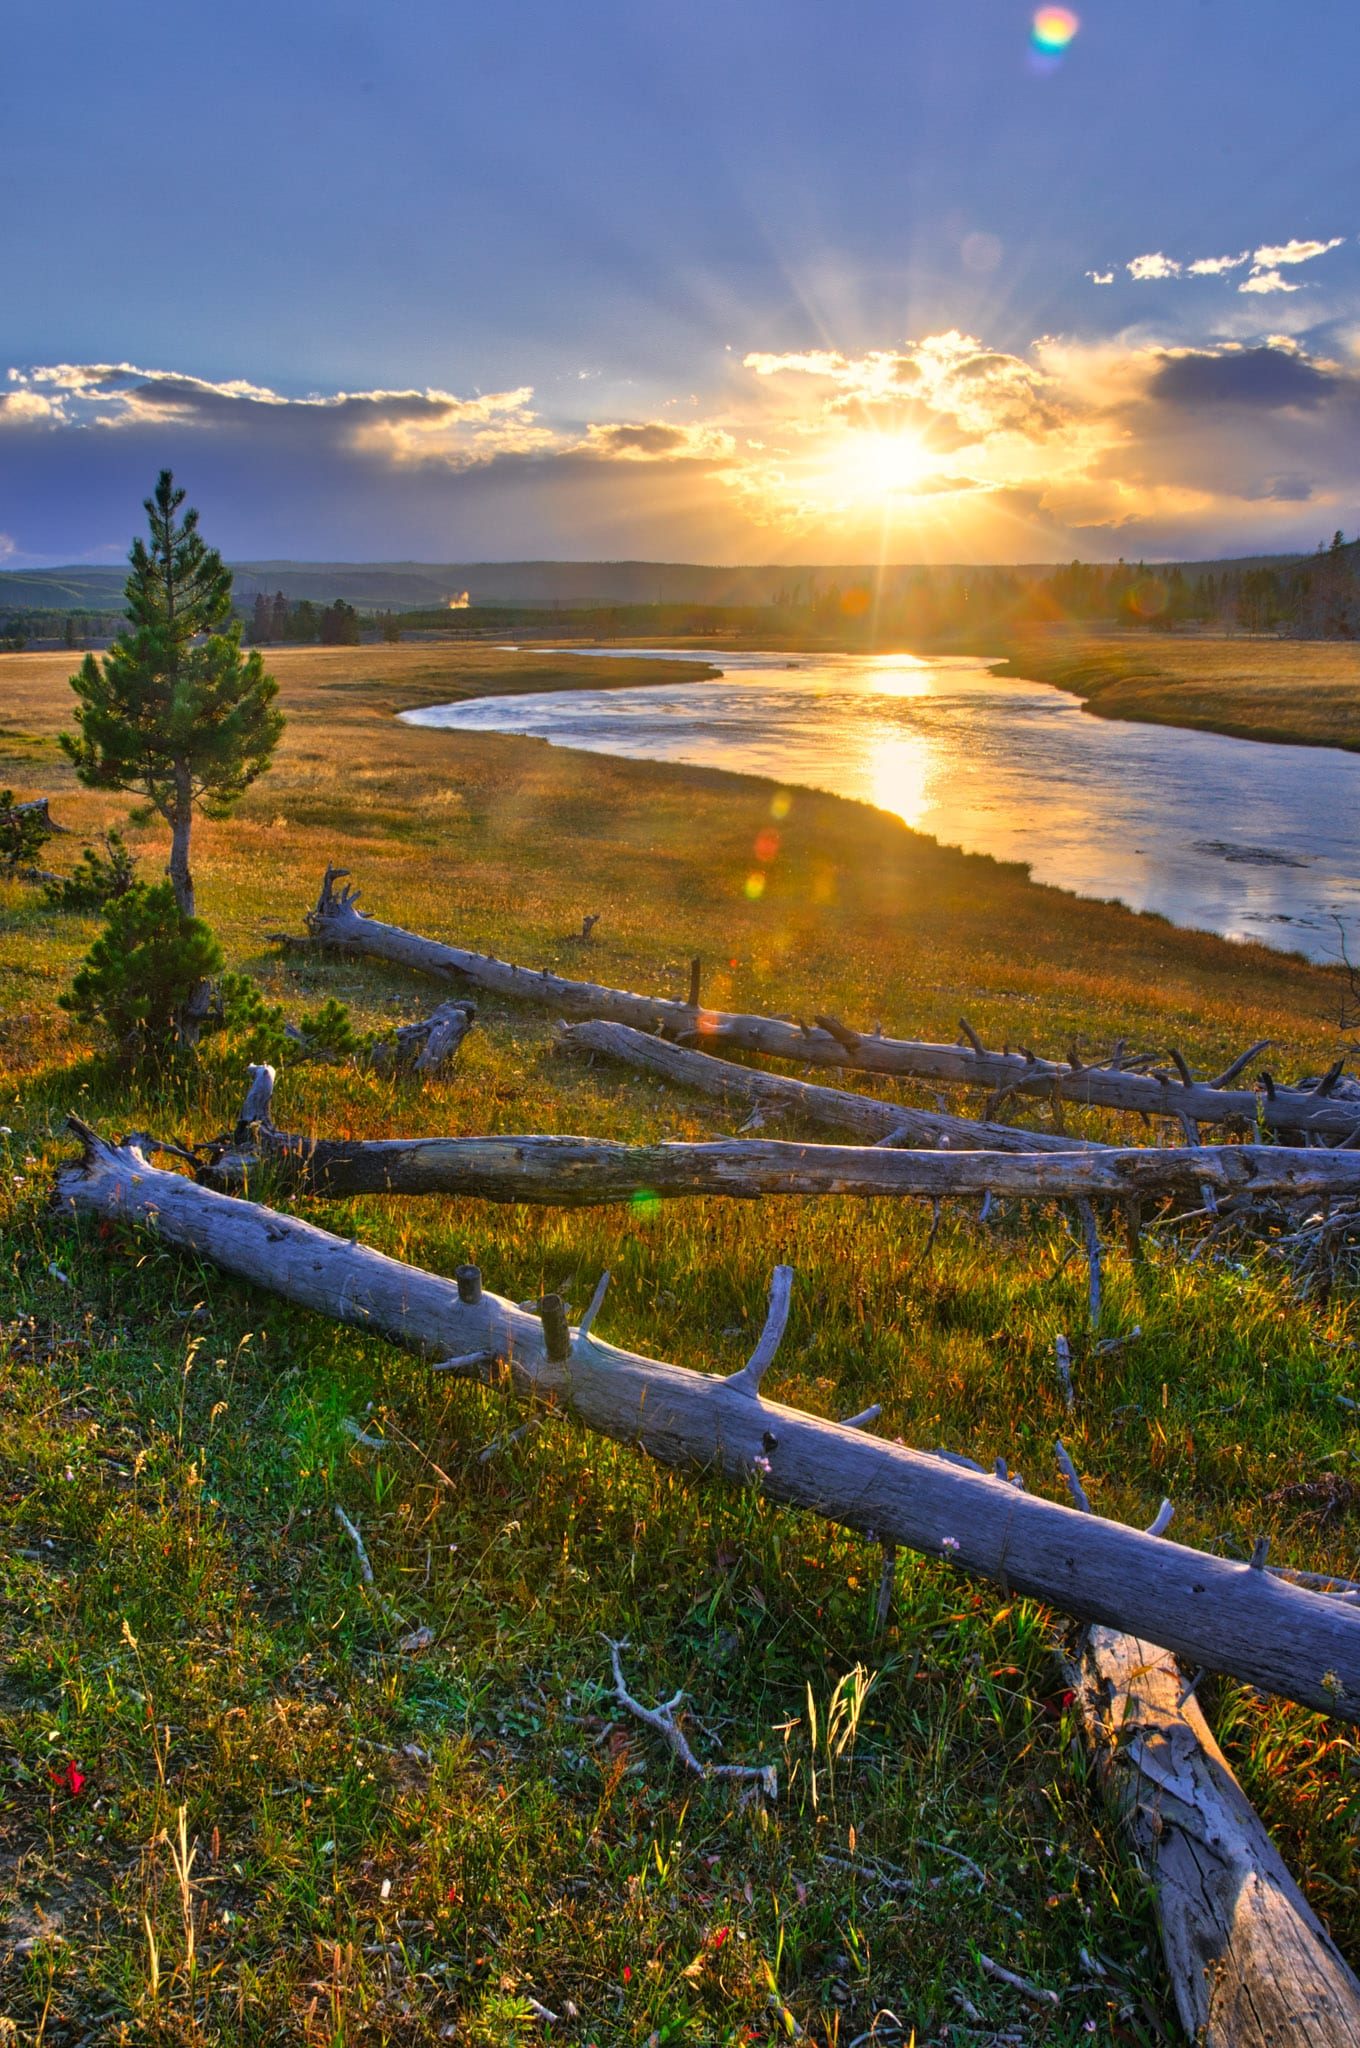 View of the Firehole River at sundown in Yellowstone National Park, Wyoming.